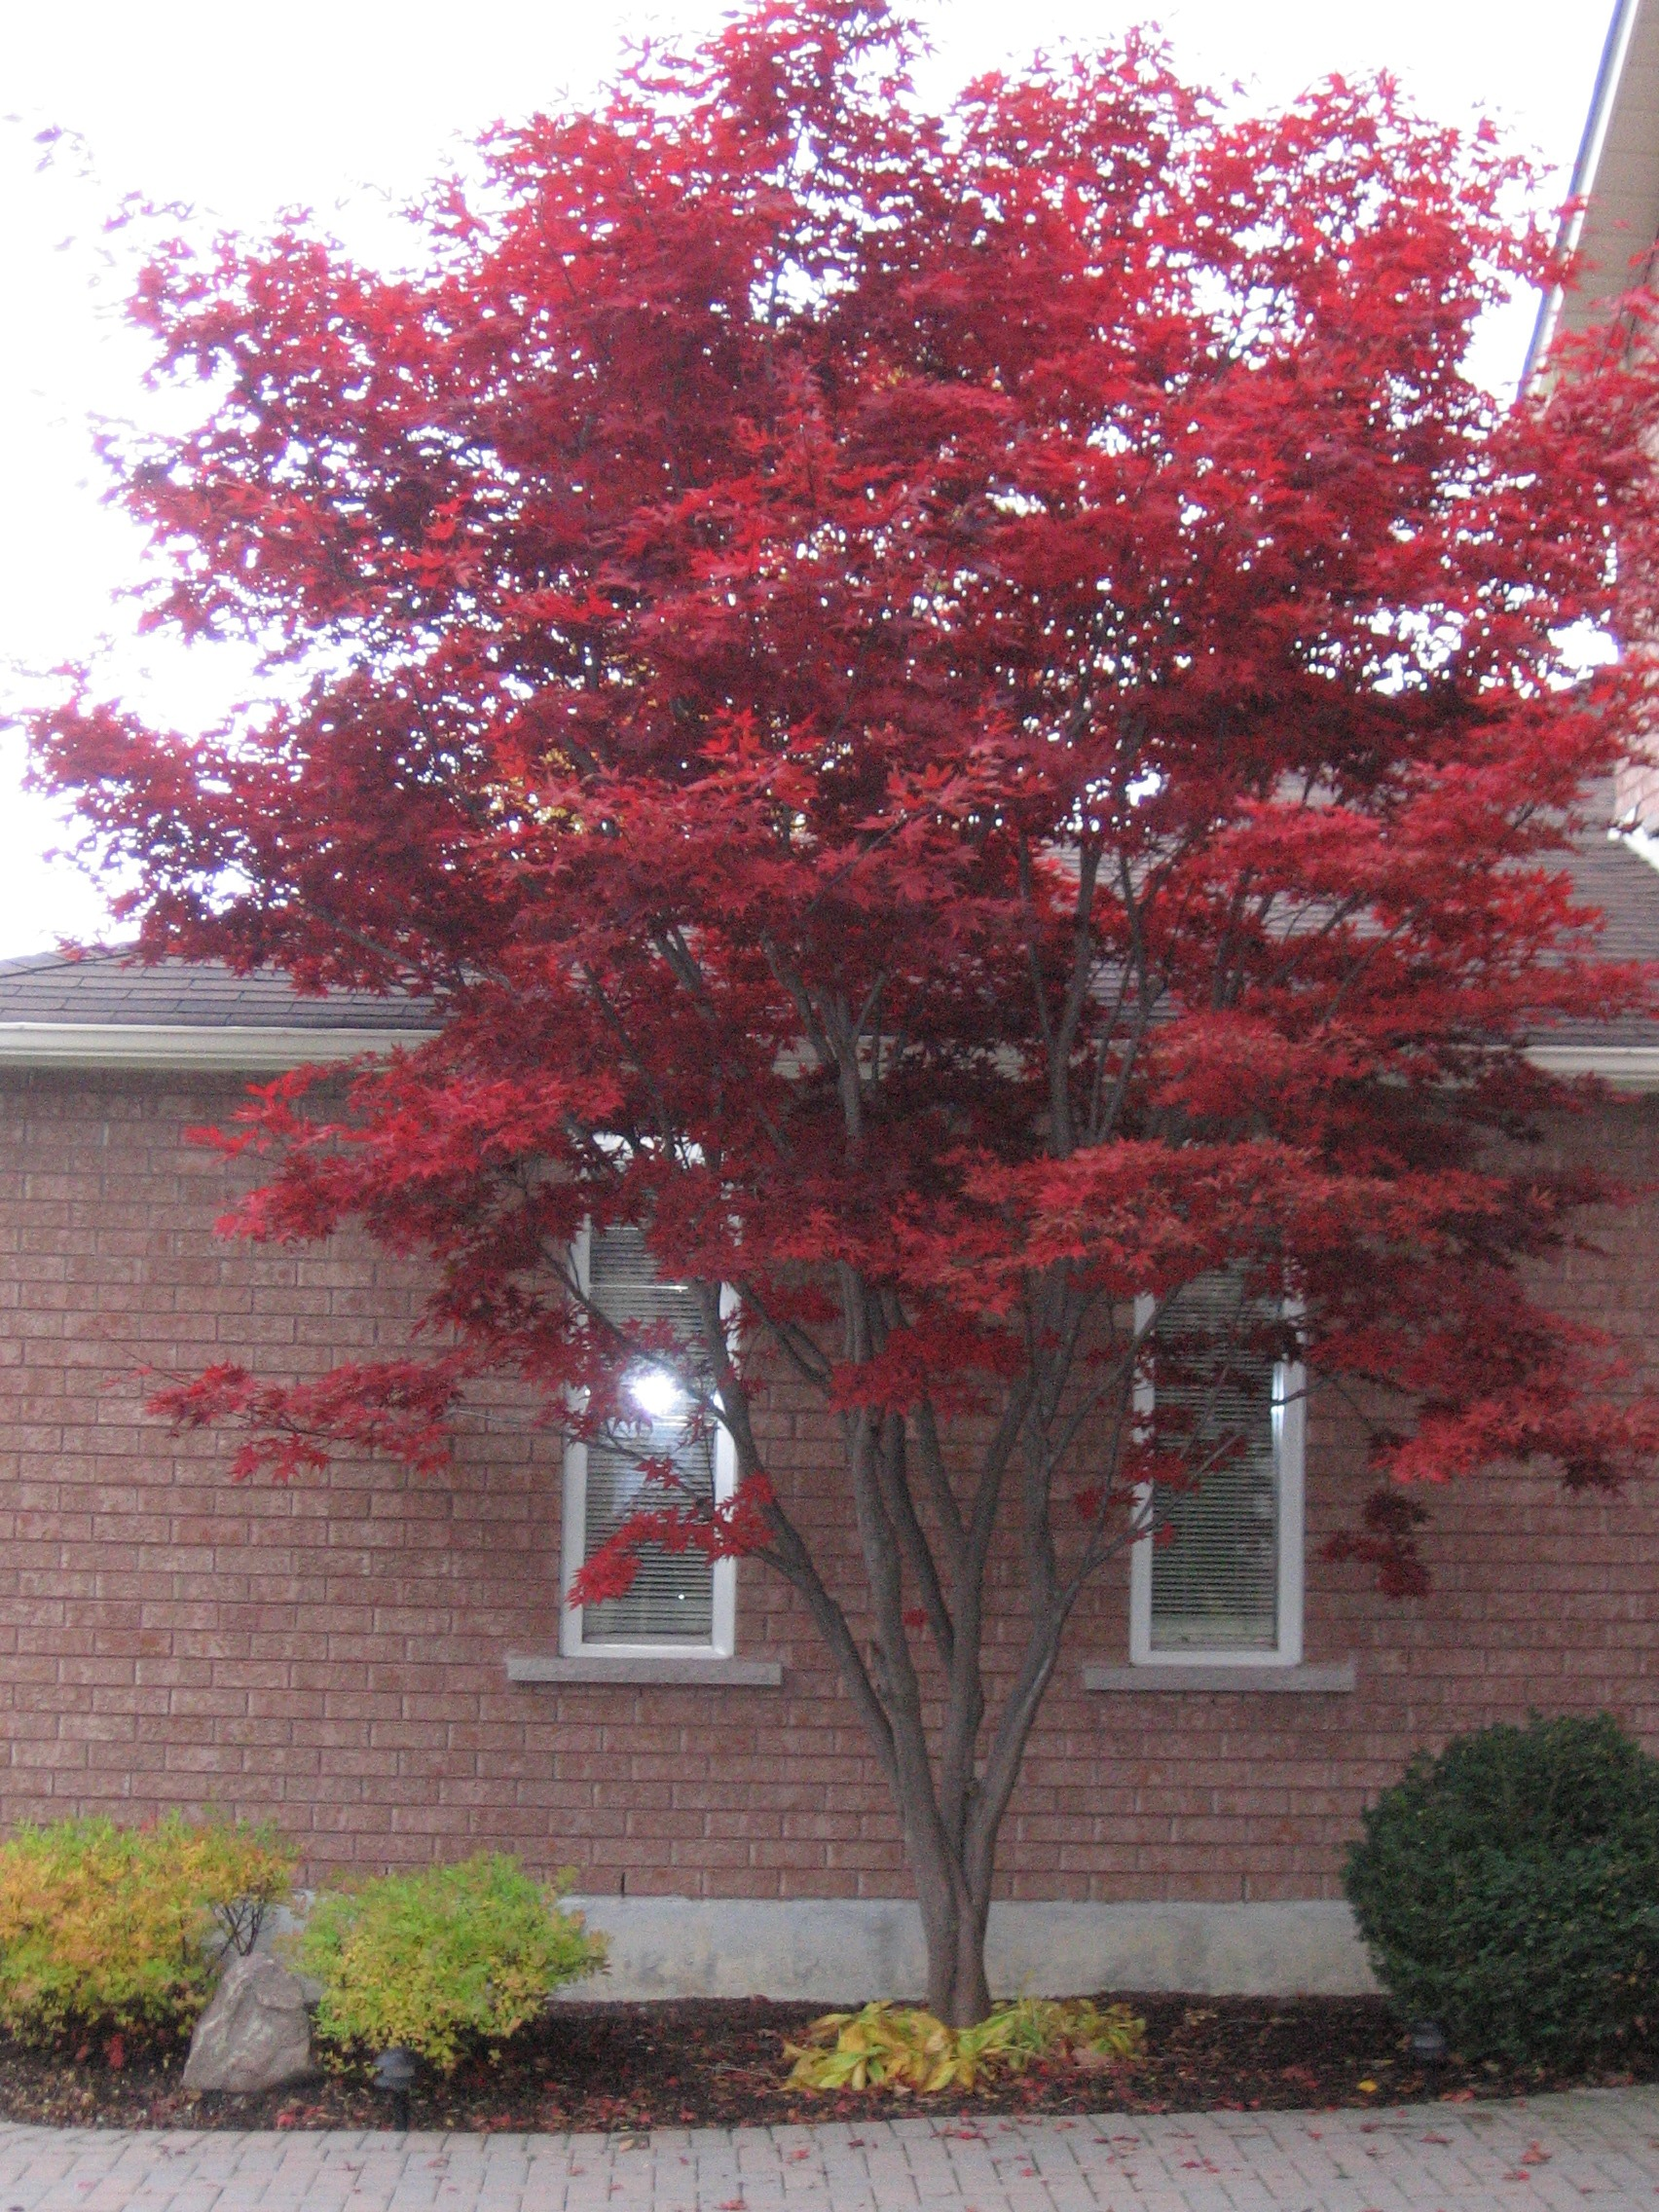 Mighty Japanese Maple in my yard